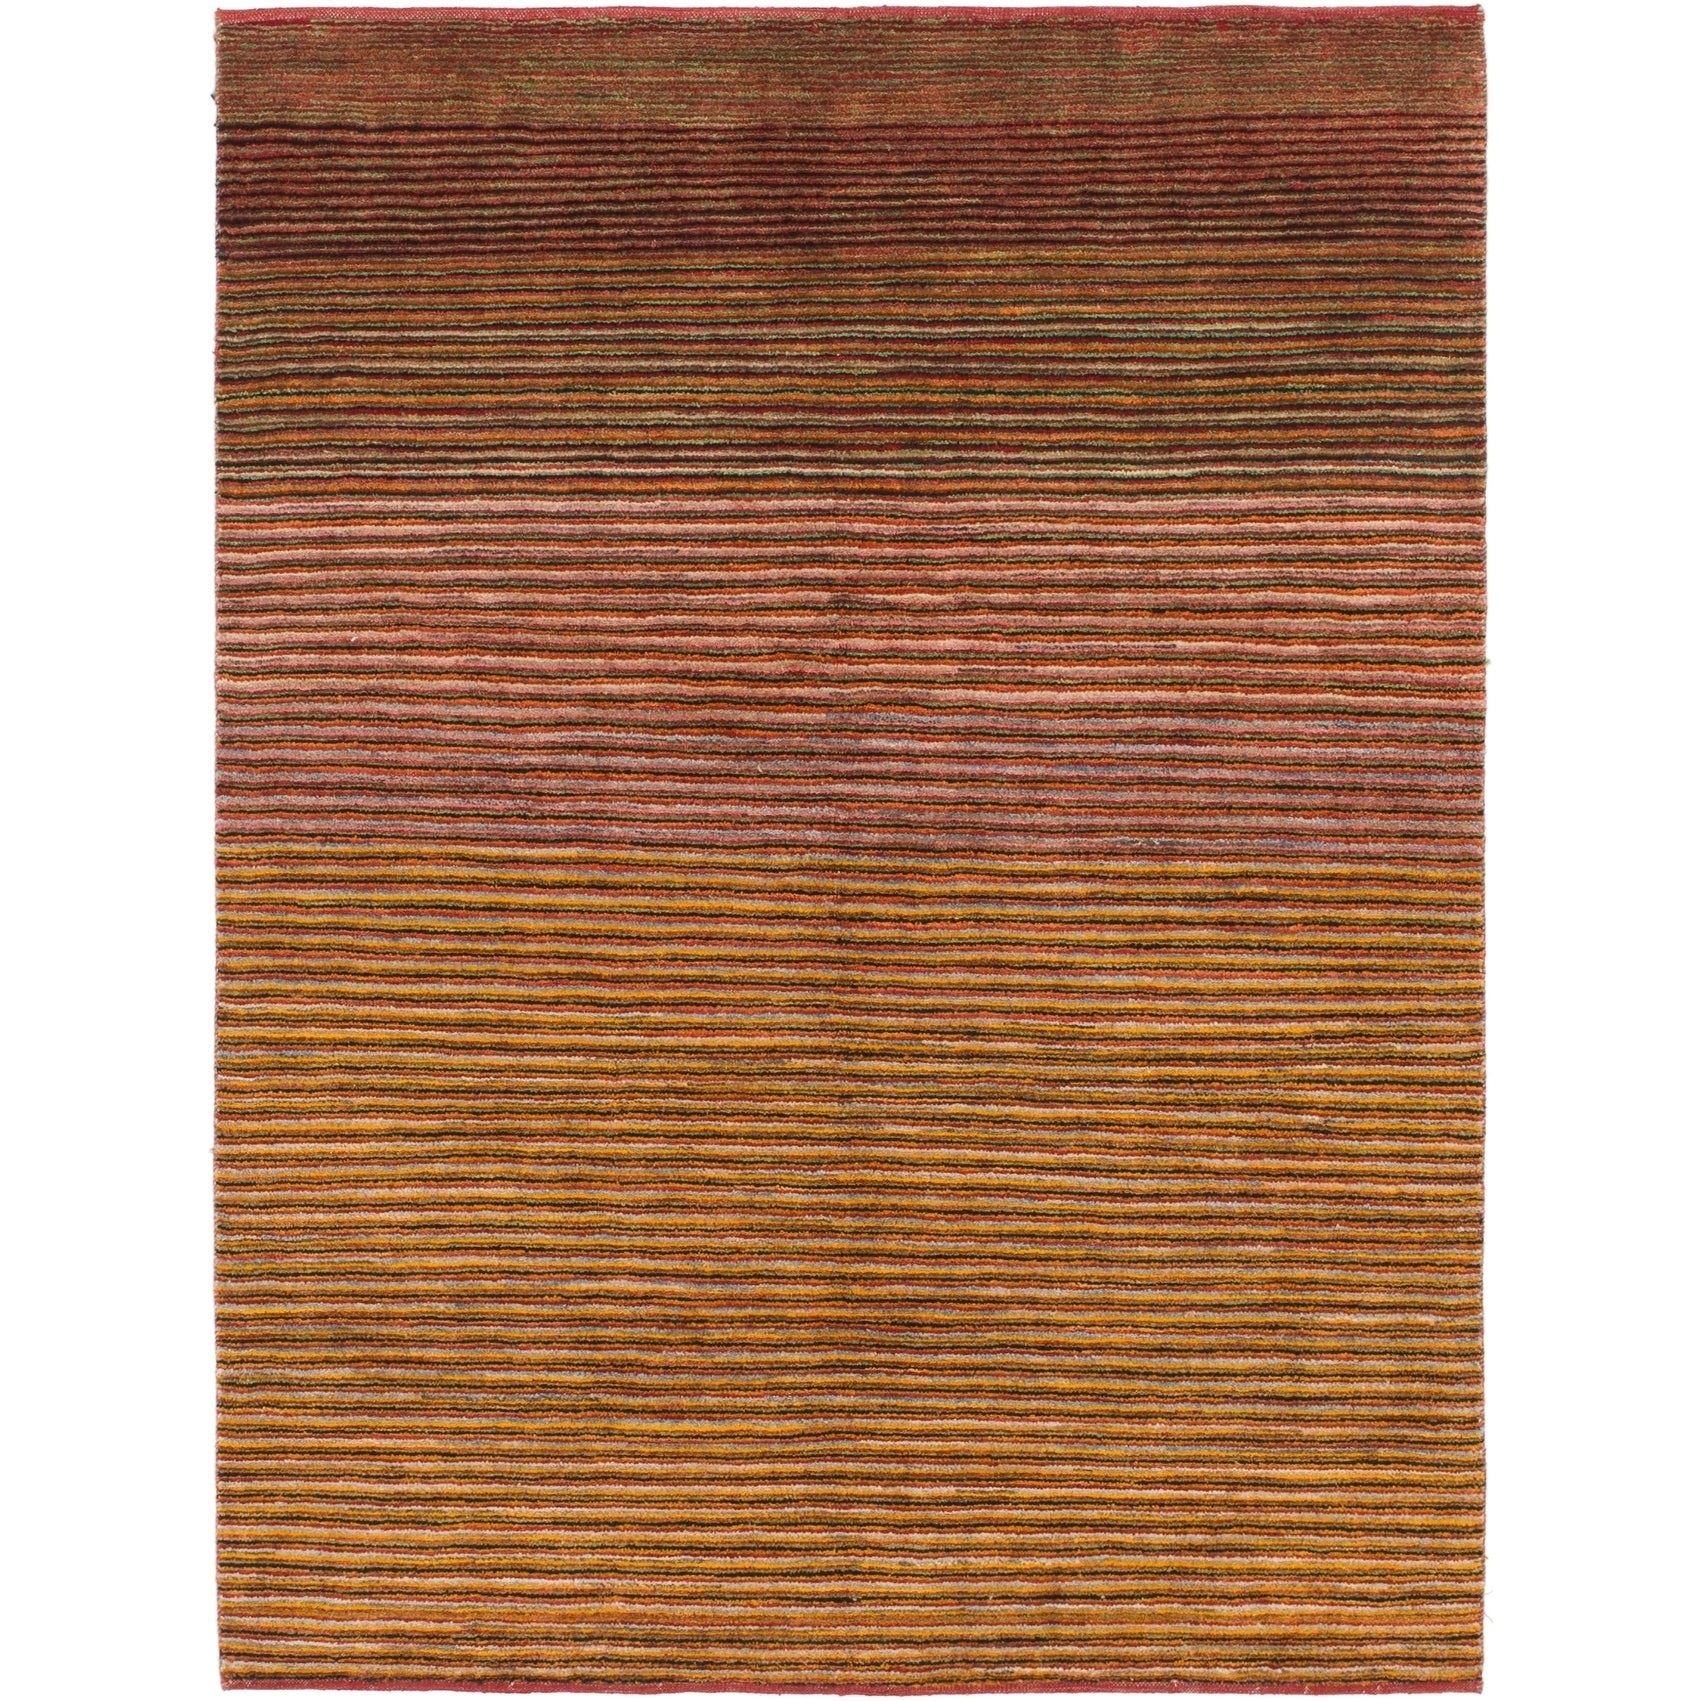 Hand Knotted Kashkuli Gabbeh Wool Area Rug - 5 x 6 7 (Red - 5 x 6 7)